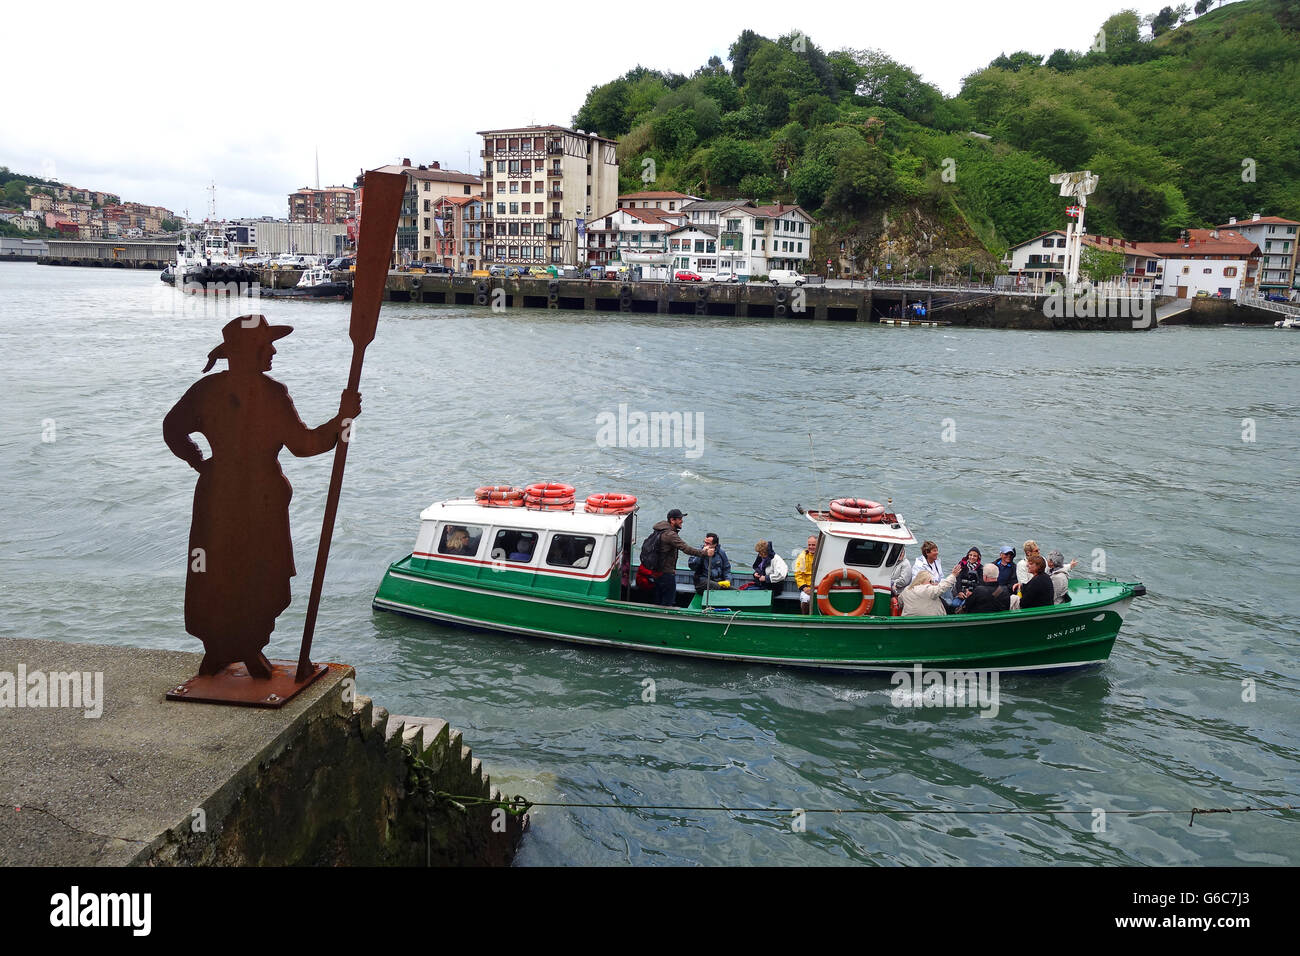 Pasaia or Pasajes located in the province of Gipuzkoa in the Basque Region of Spain ferry boat - Stock Image